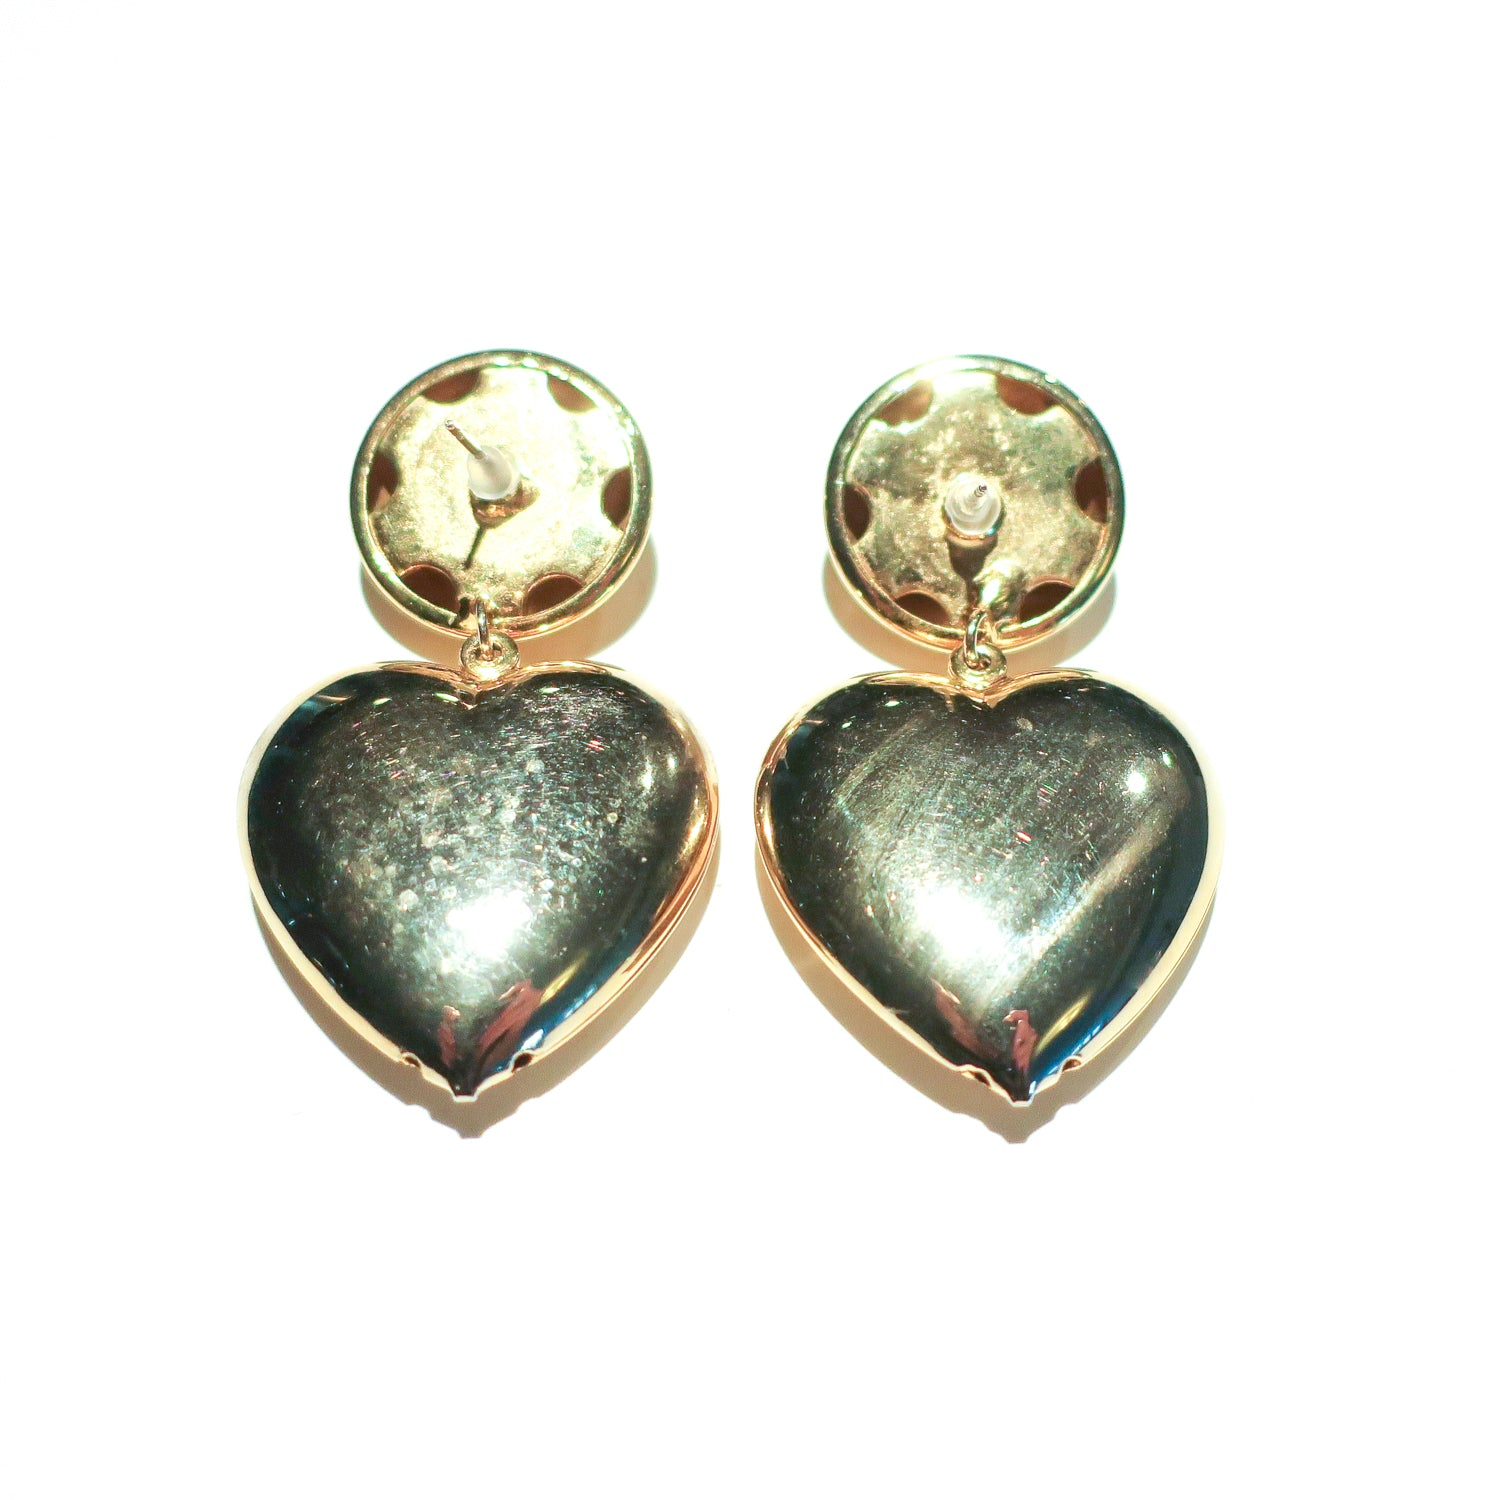 "Second Room Vintage Clothing. Vintage gold tone earrings with round stud top, and hollow hanging heart, 2.25"" long, 1.25"" wide. These are quite lightweight, as both the round piece and heart piece are hollow. Original earring backs have been replaced with new, clear silicone earring backs. Free North American shipping on all orders."